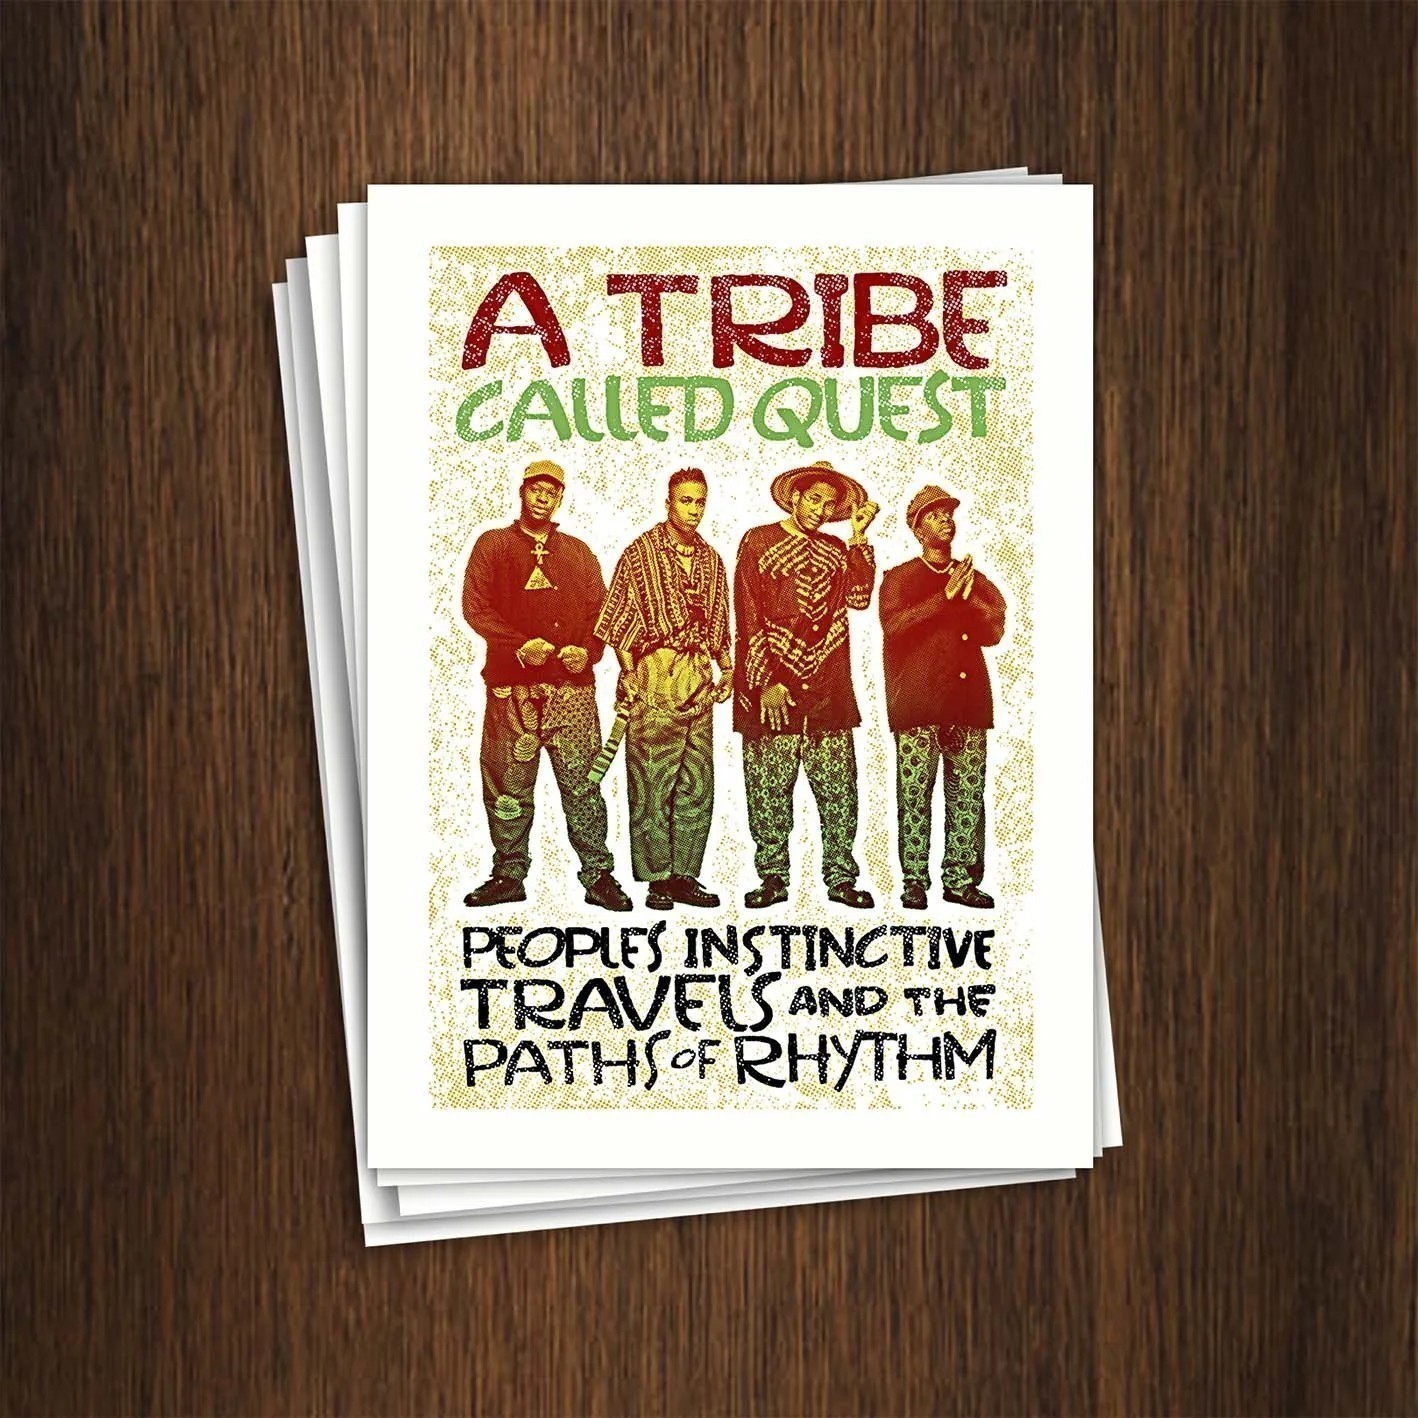 Adesivo 7x9,5cm - A Tribe Called Quest